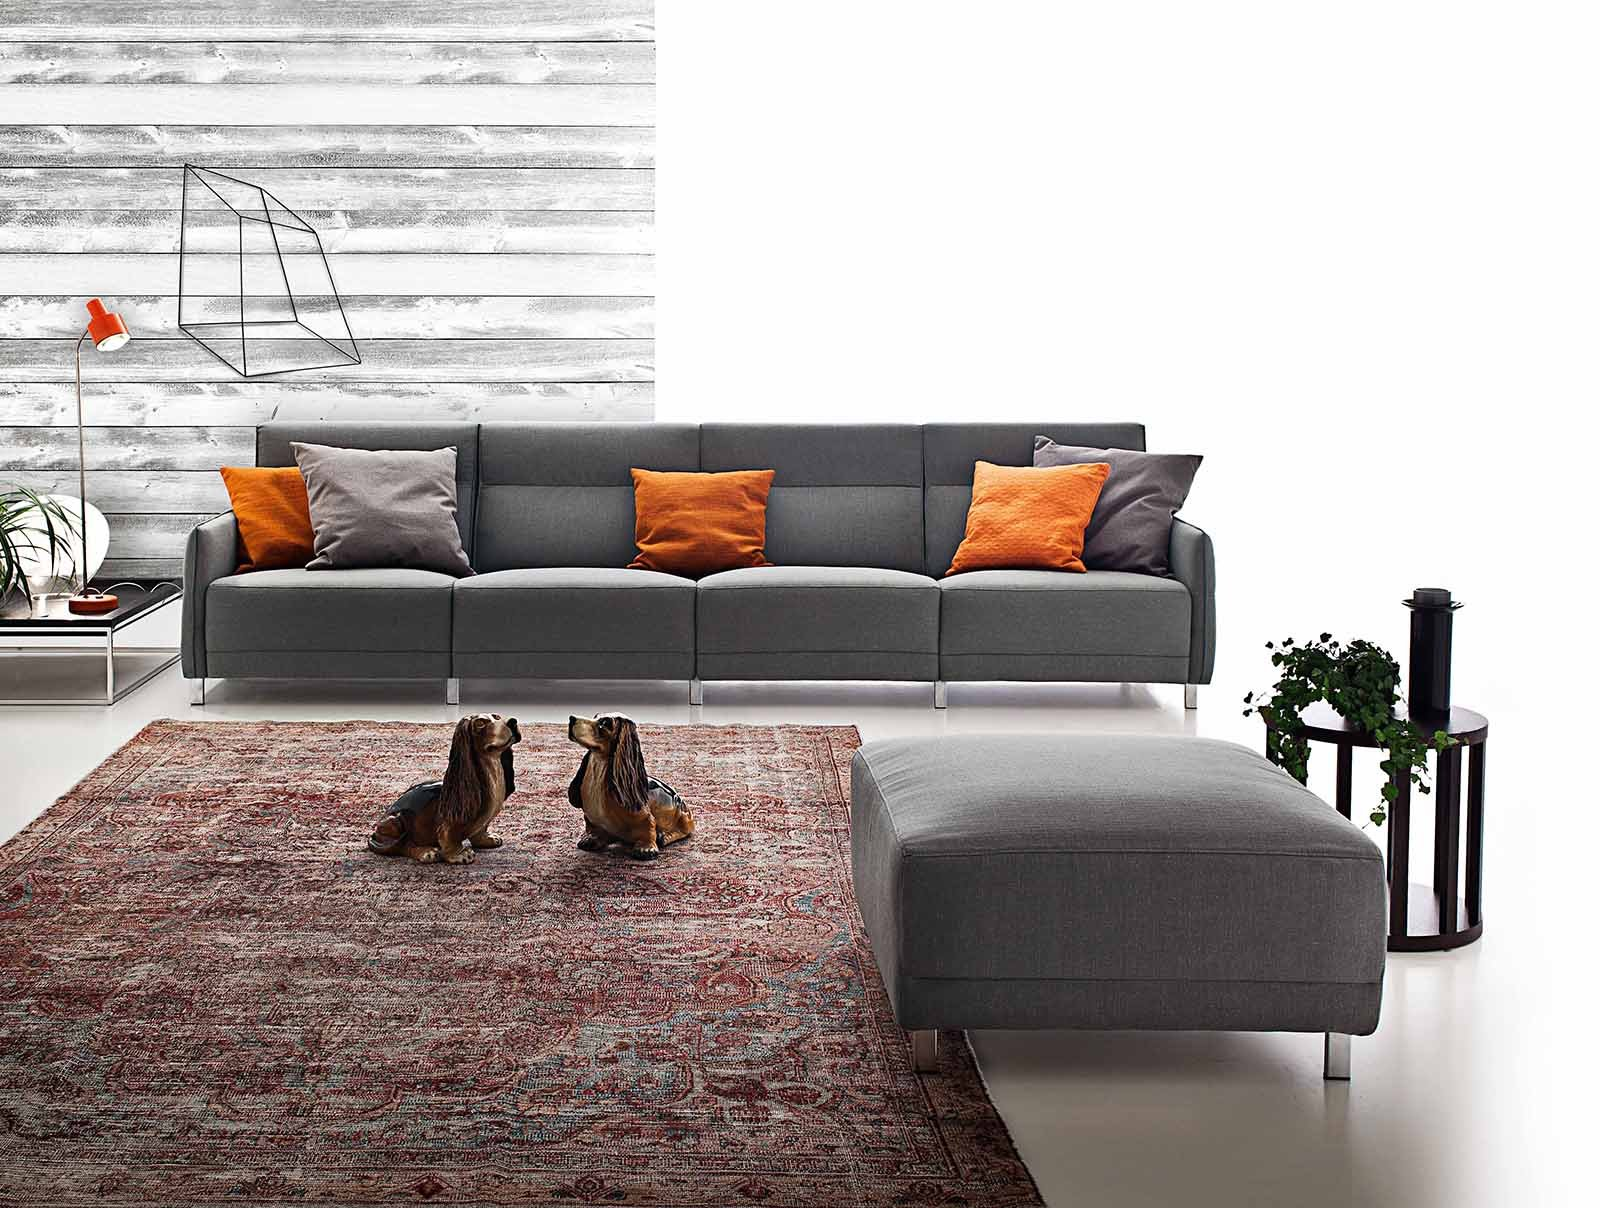 Best Divani Minotti Outlet Gallery - Skilifts.us - skilifts.us